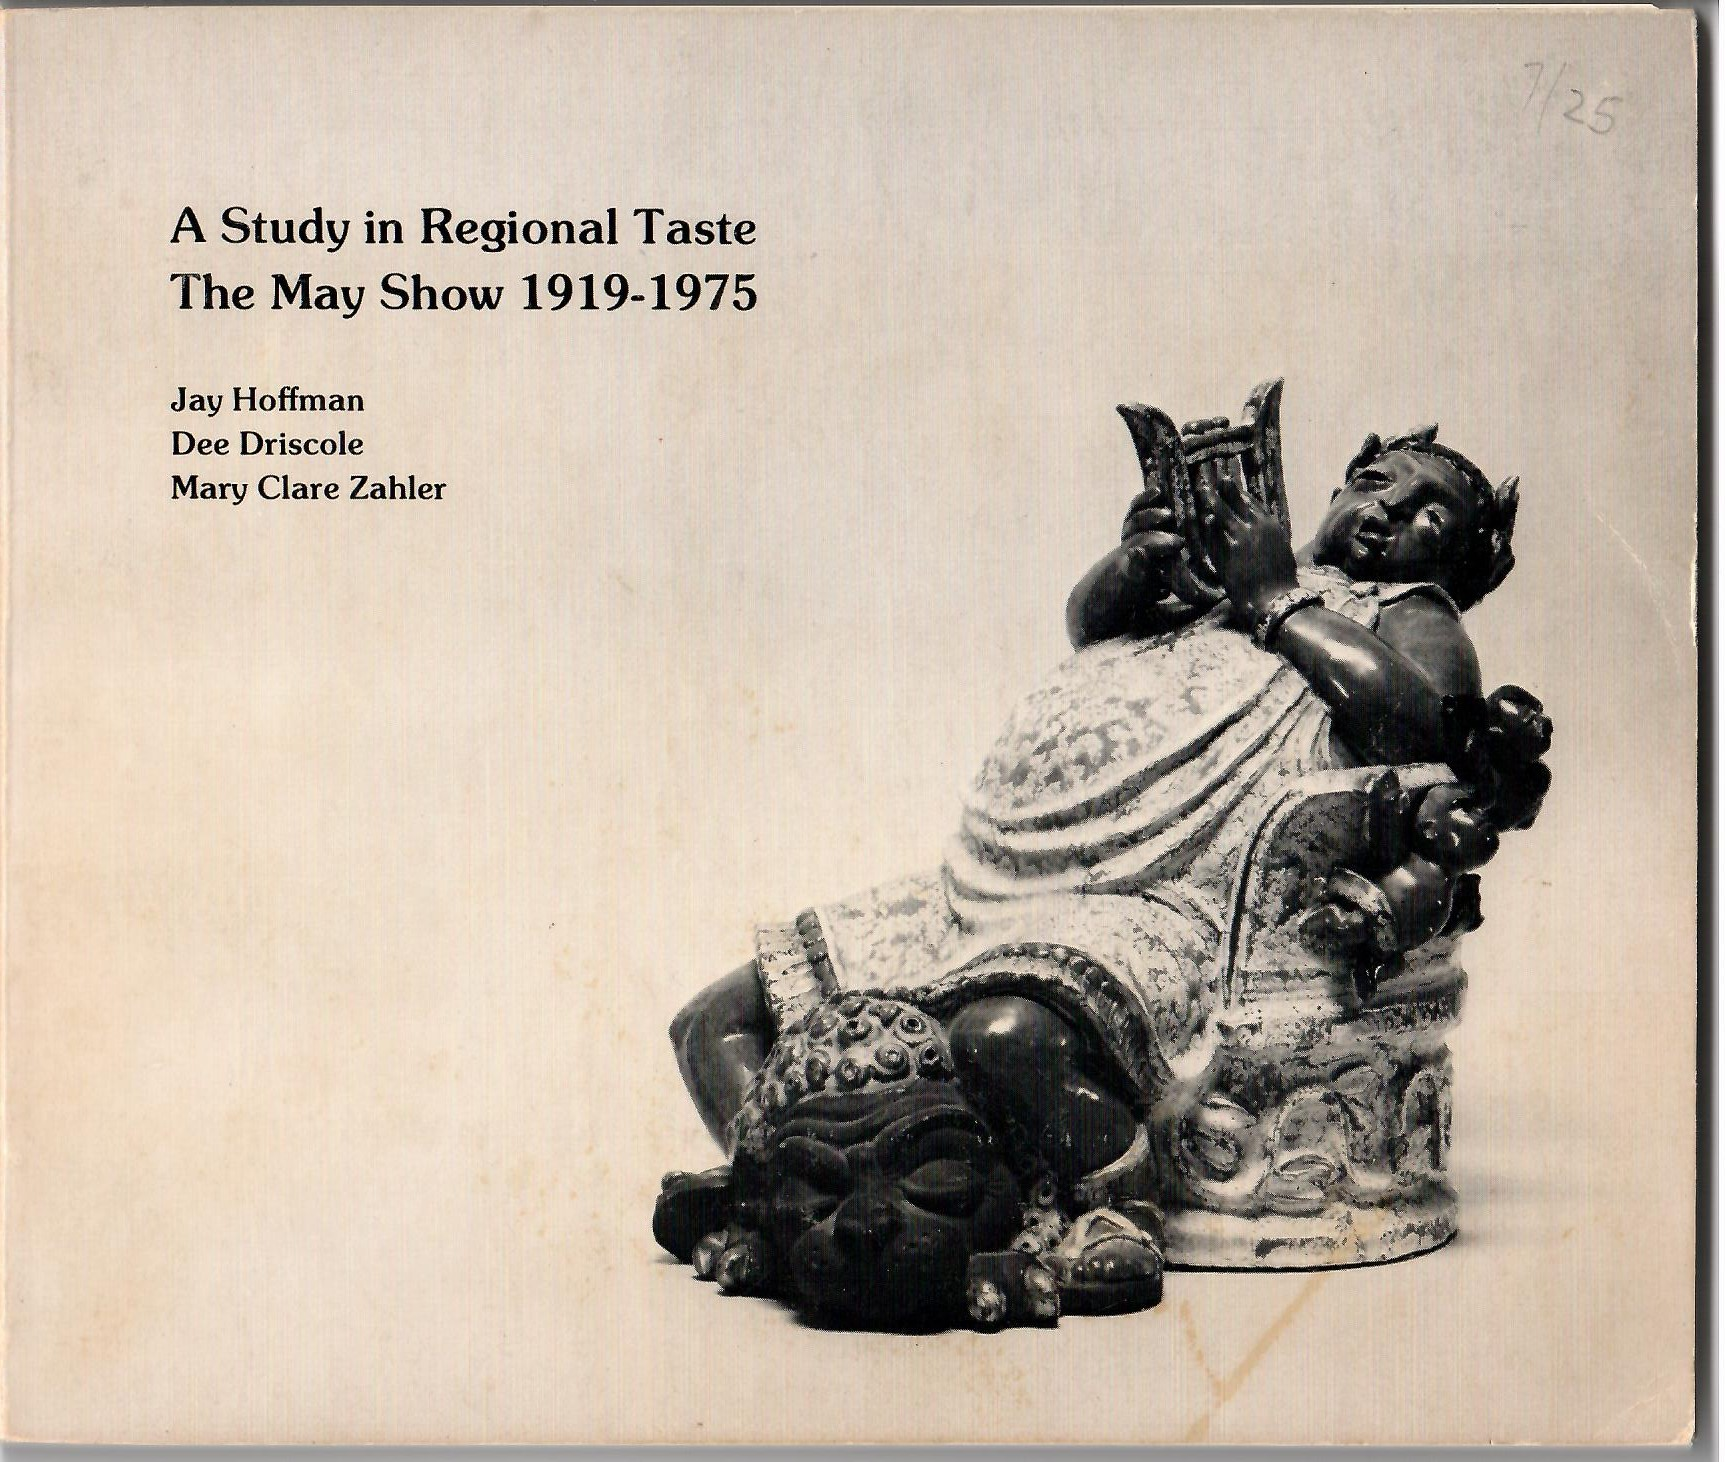 Image for The May Show 1919-1975; A STUDY IN REGIONAL TASTE